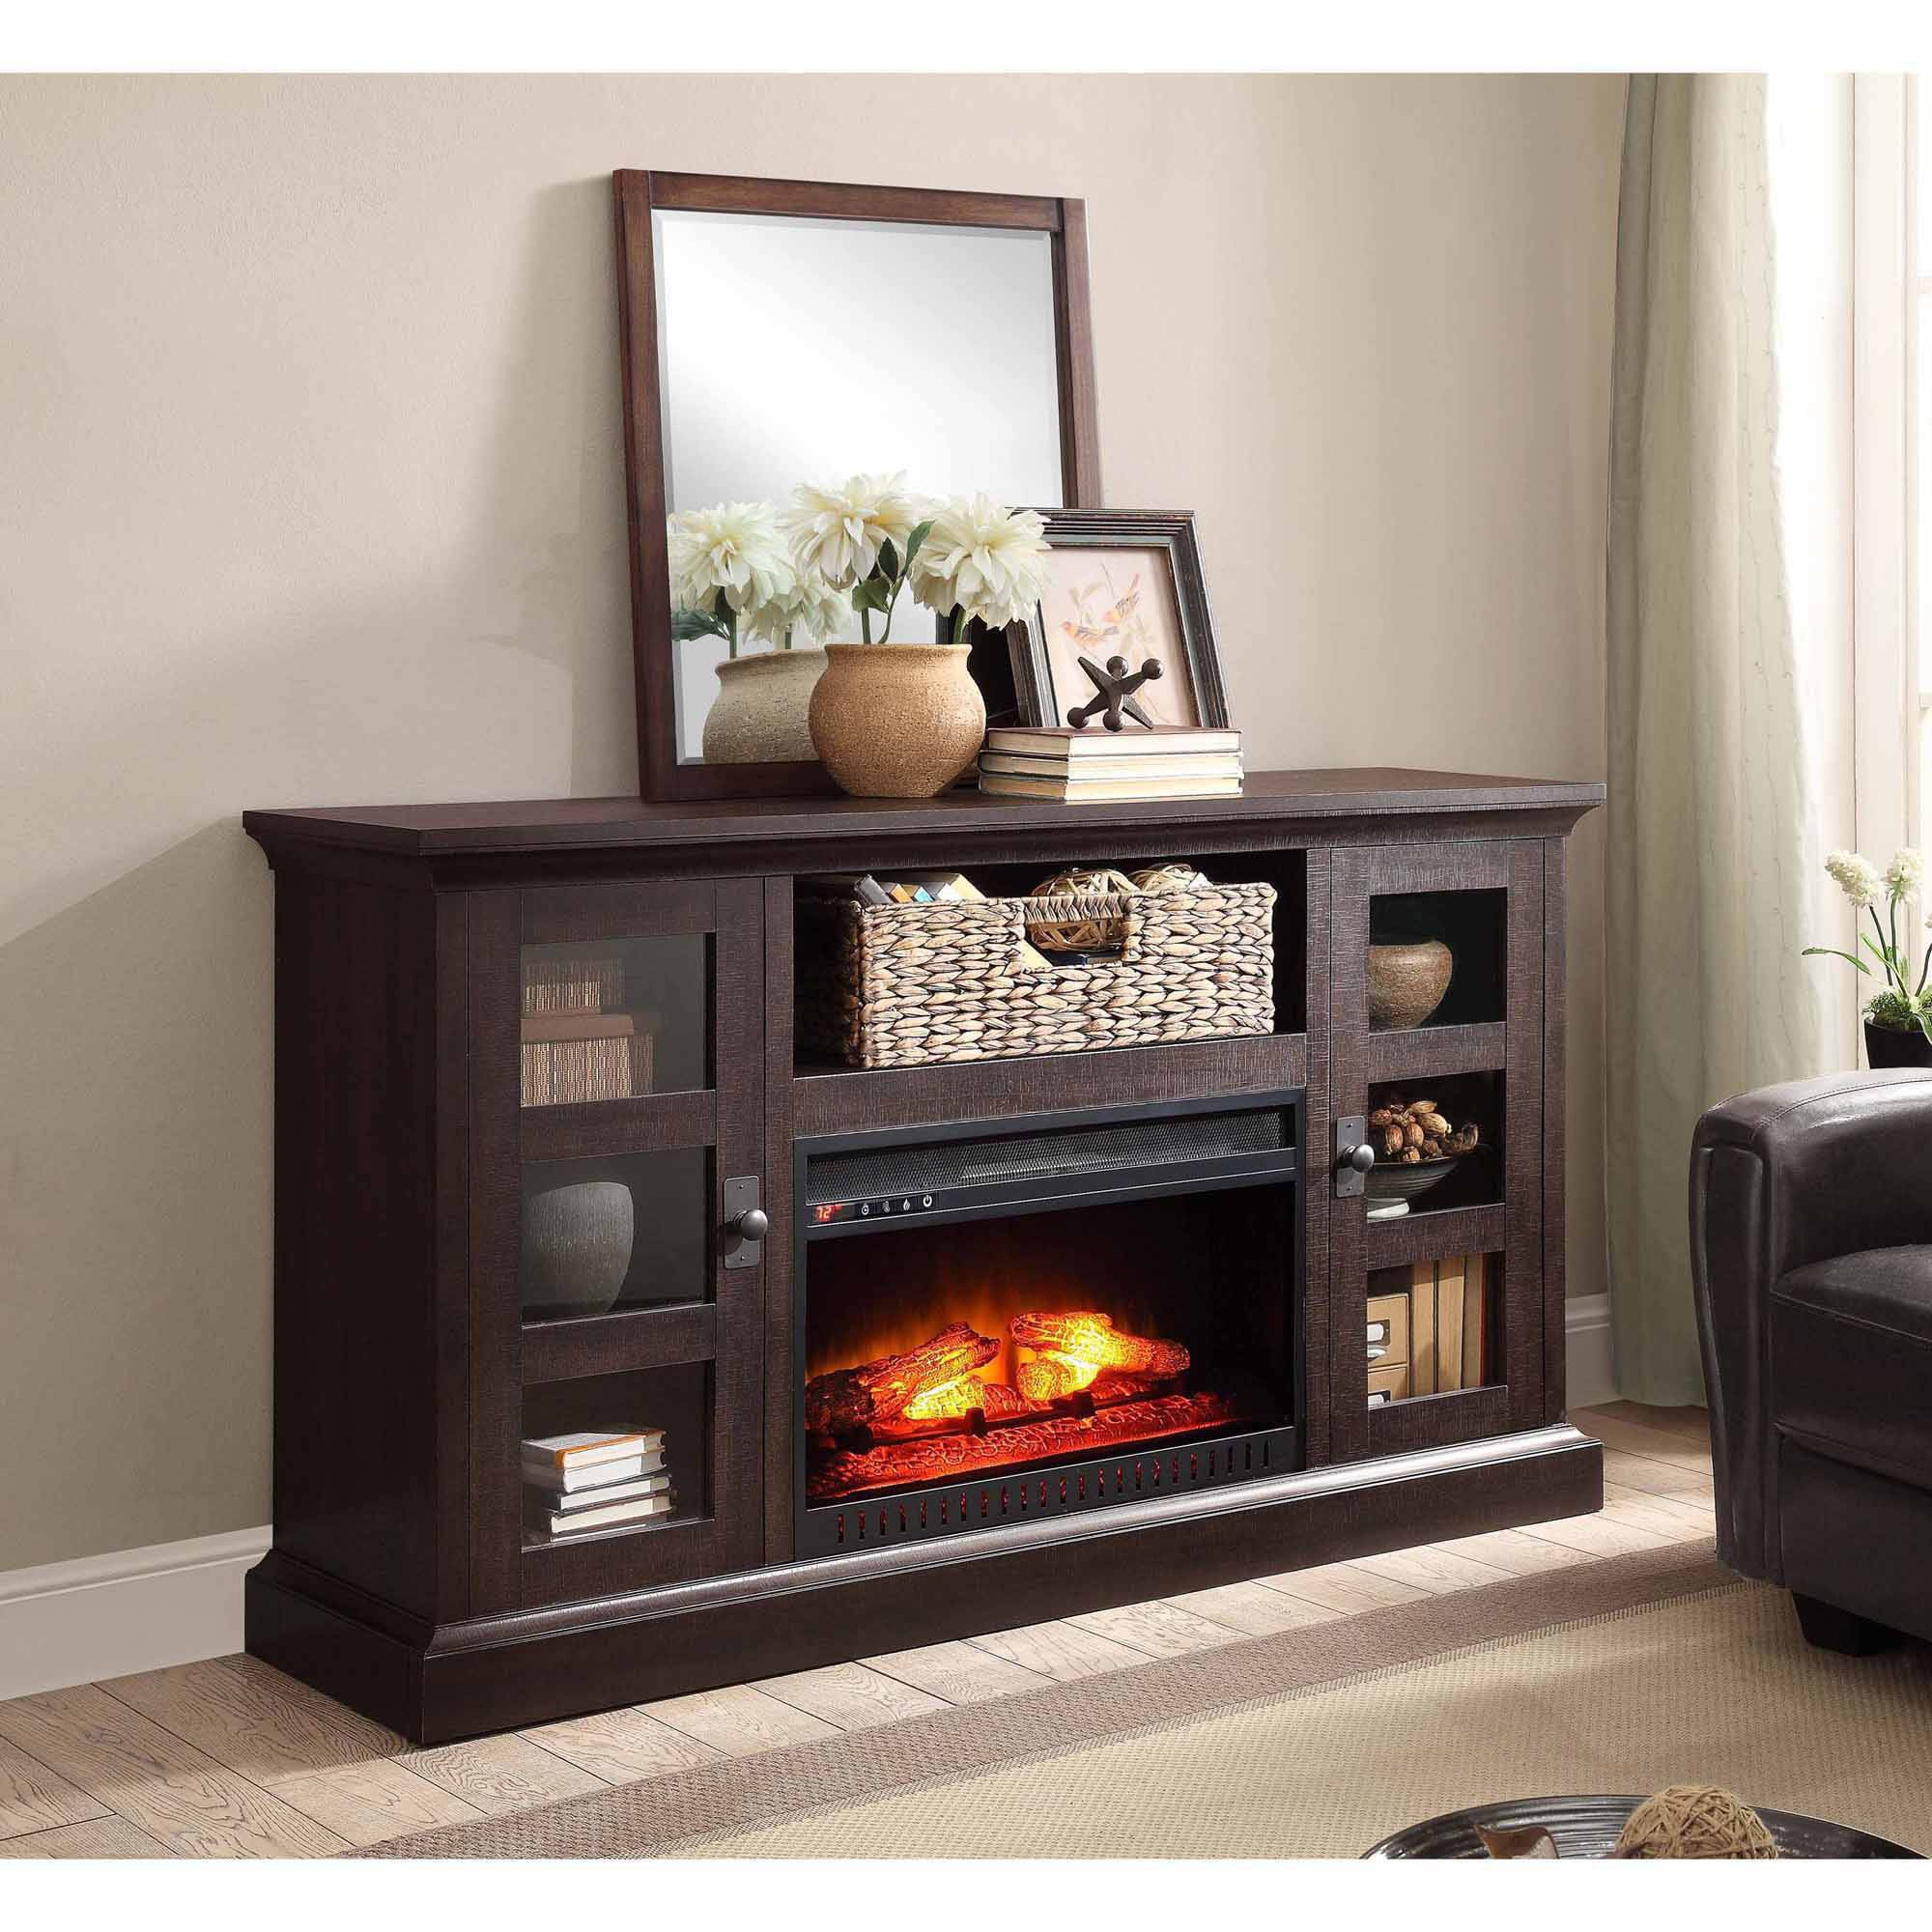 Dark Rustic Brown - Walmart.com